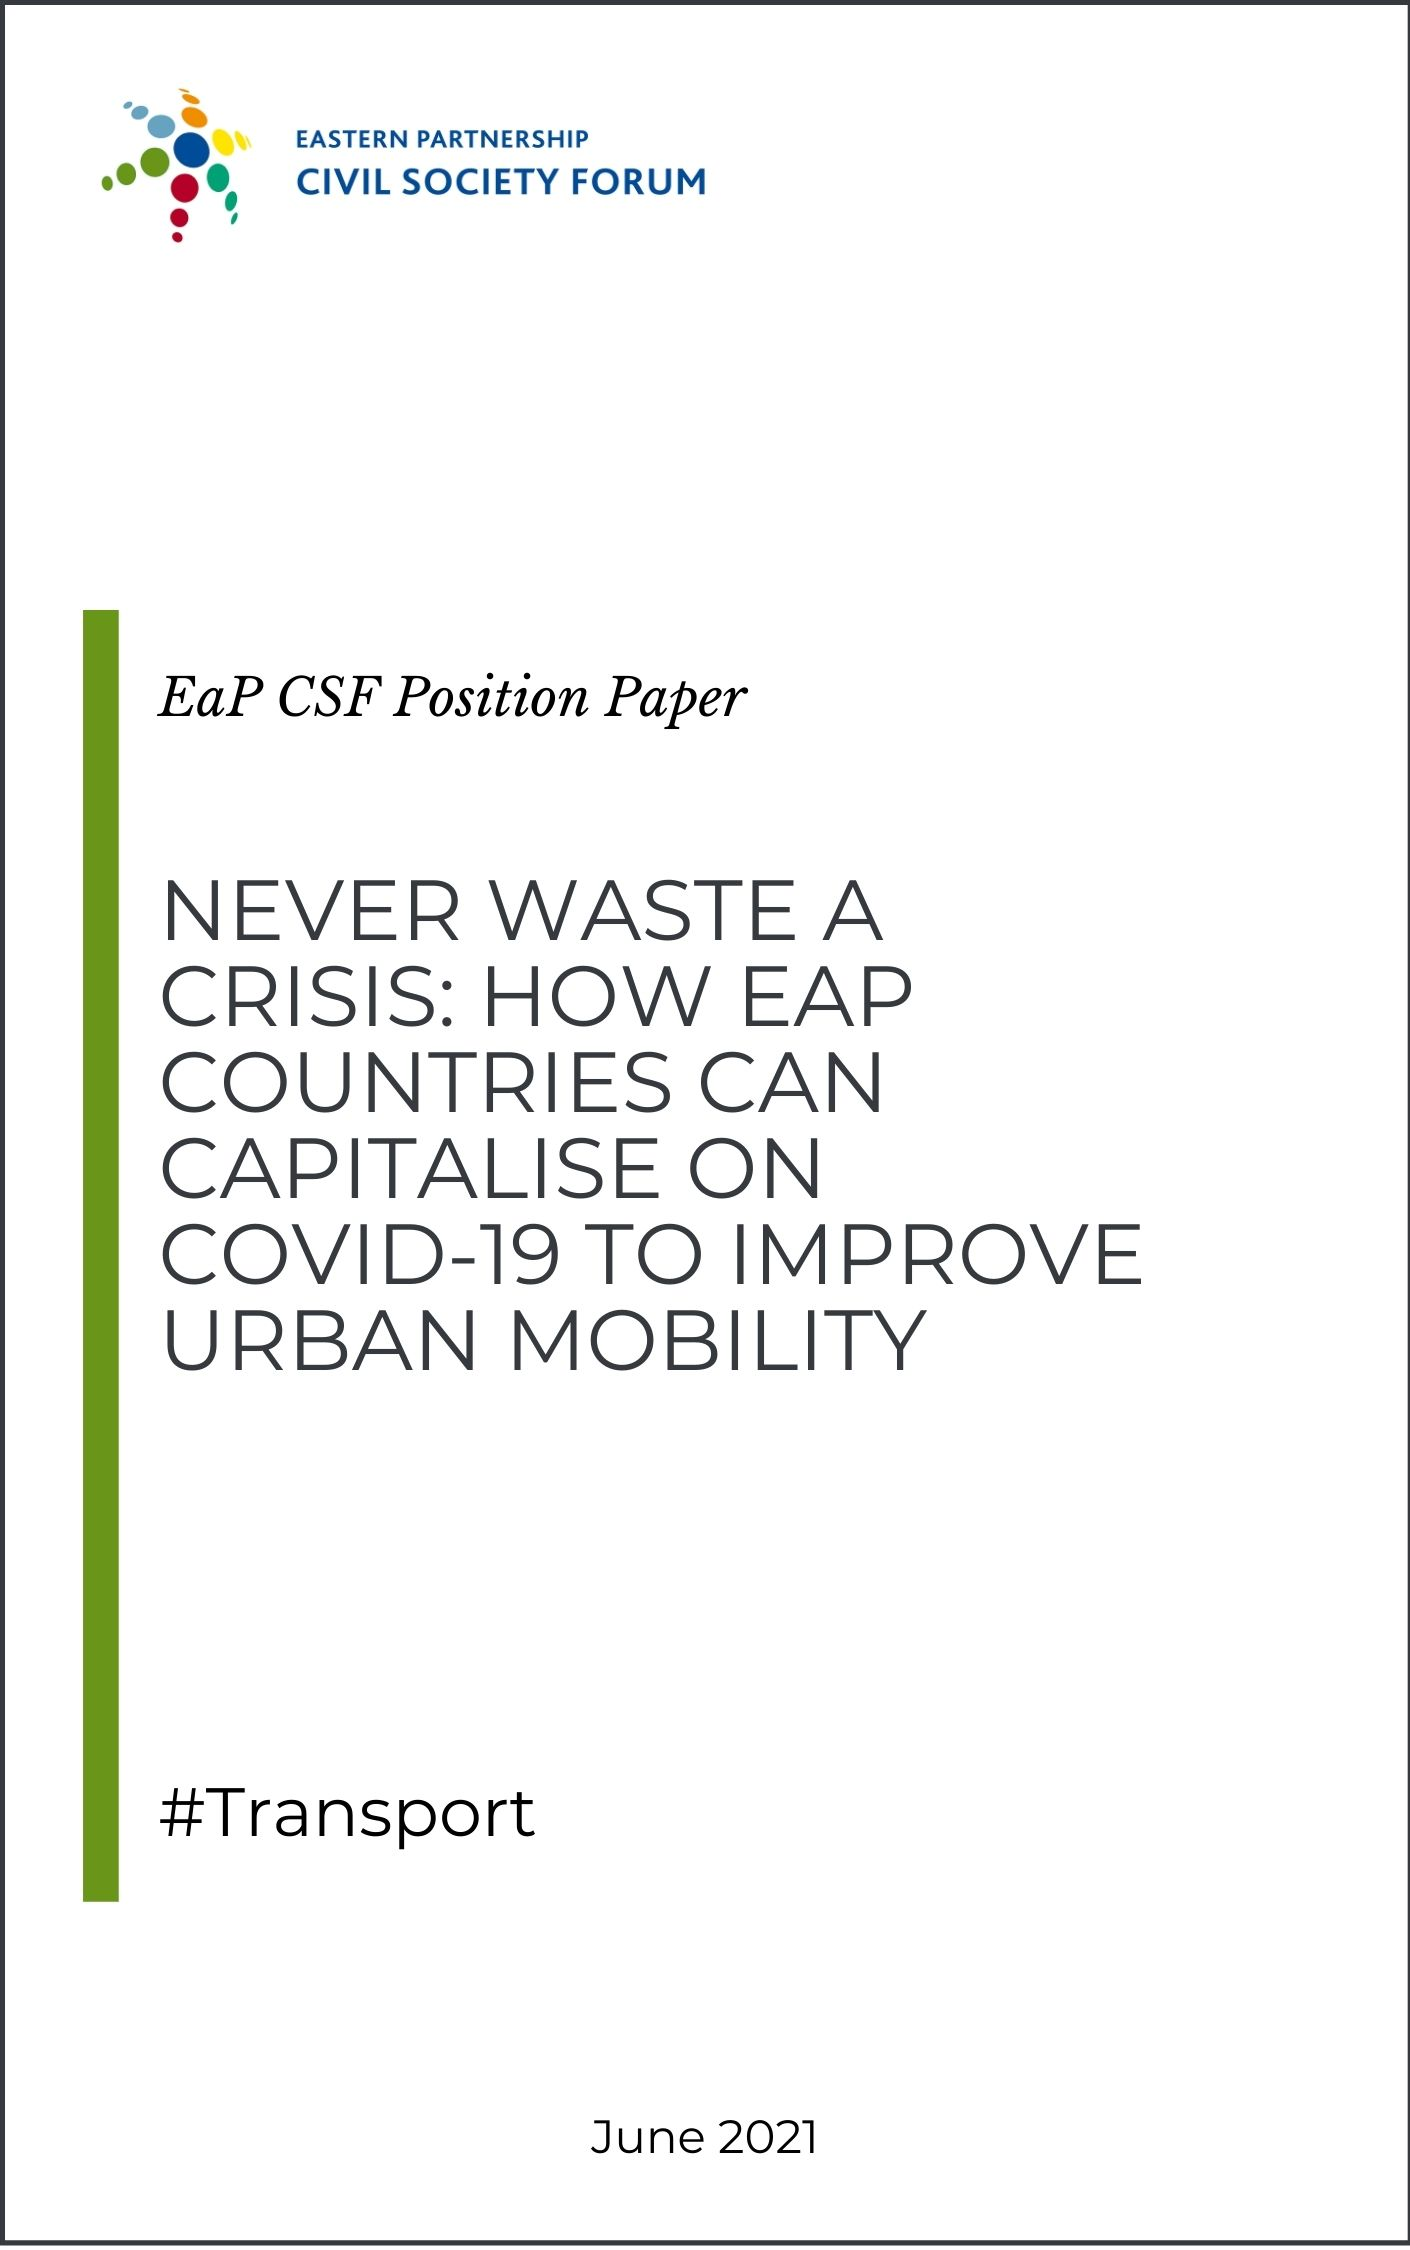 Position paper on transport and urban mobility during COVID-19